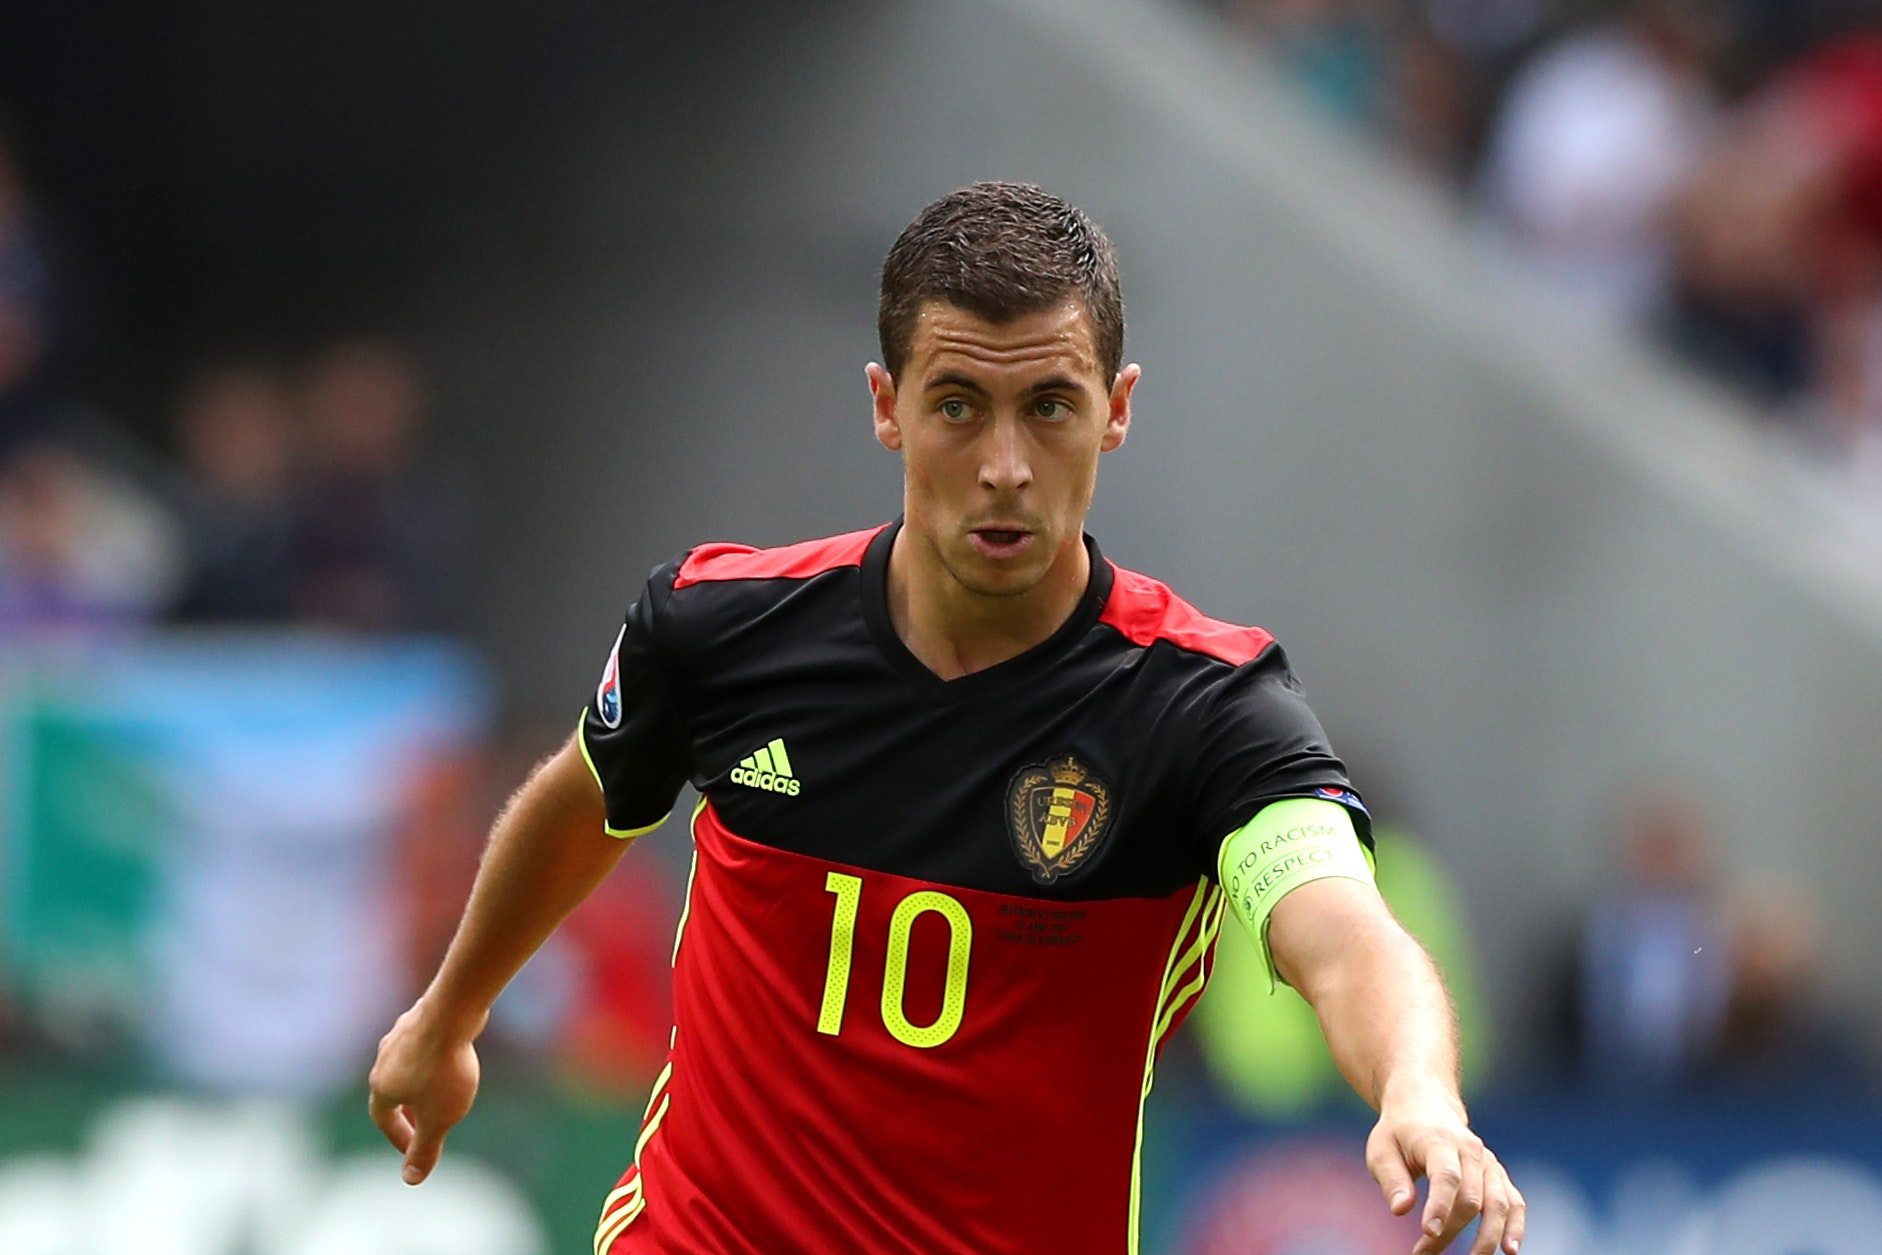 Eden Hazard limped off during Belgium's win over Costa Rica